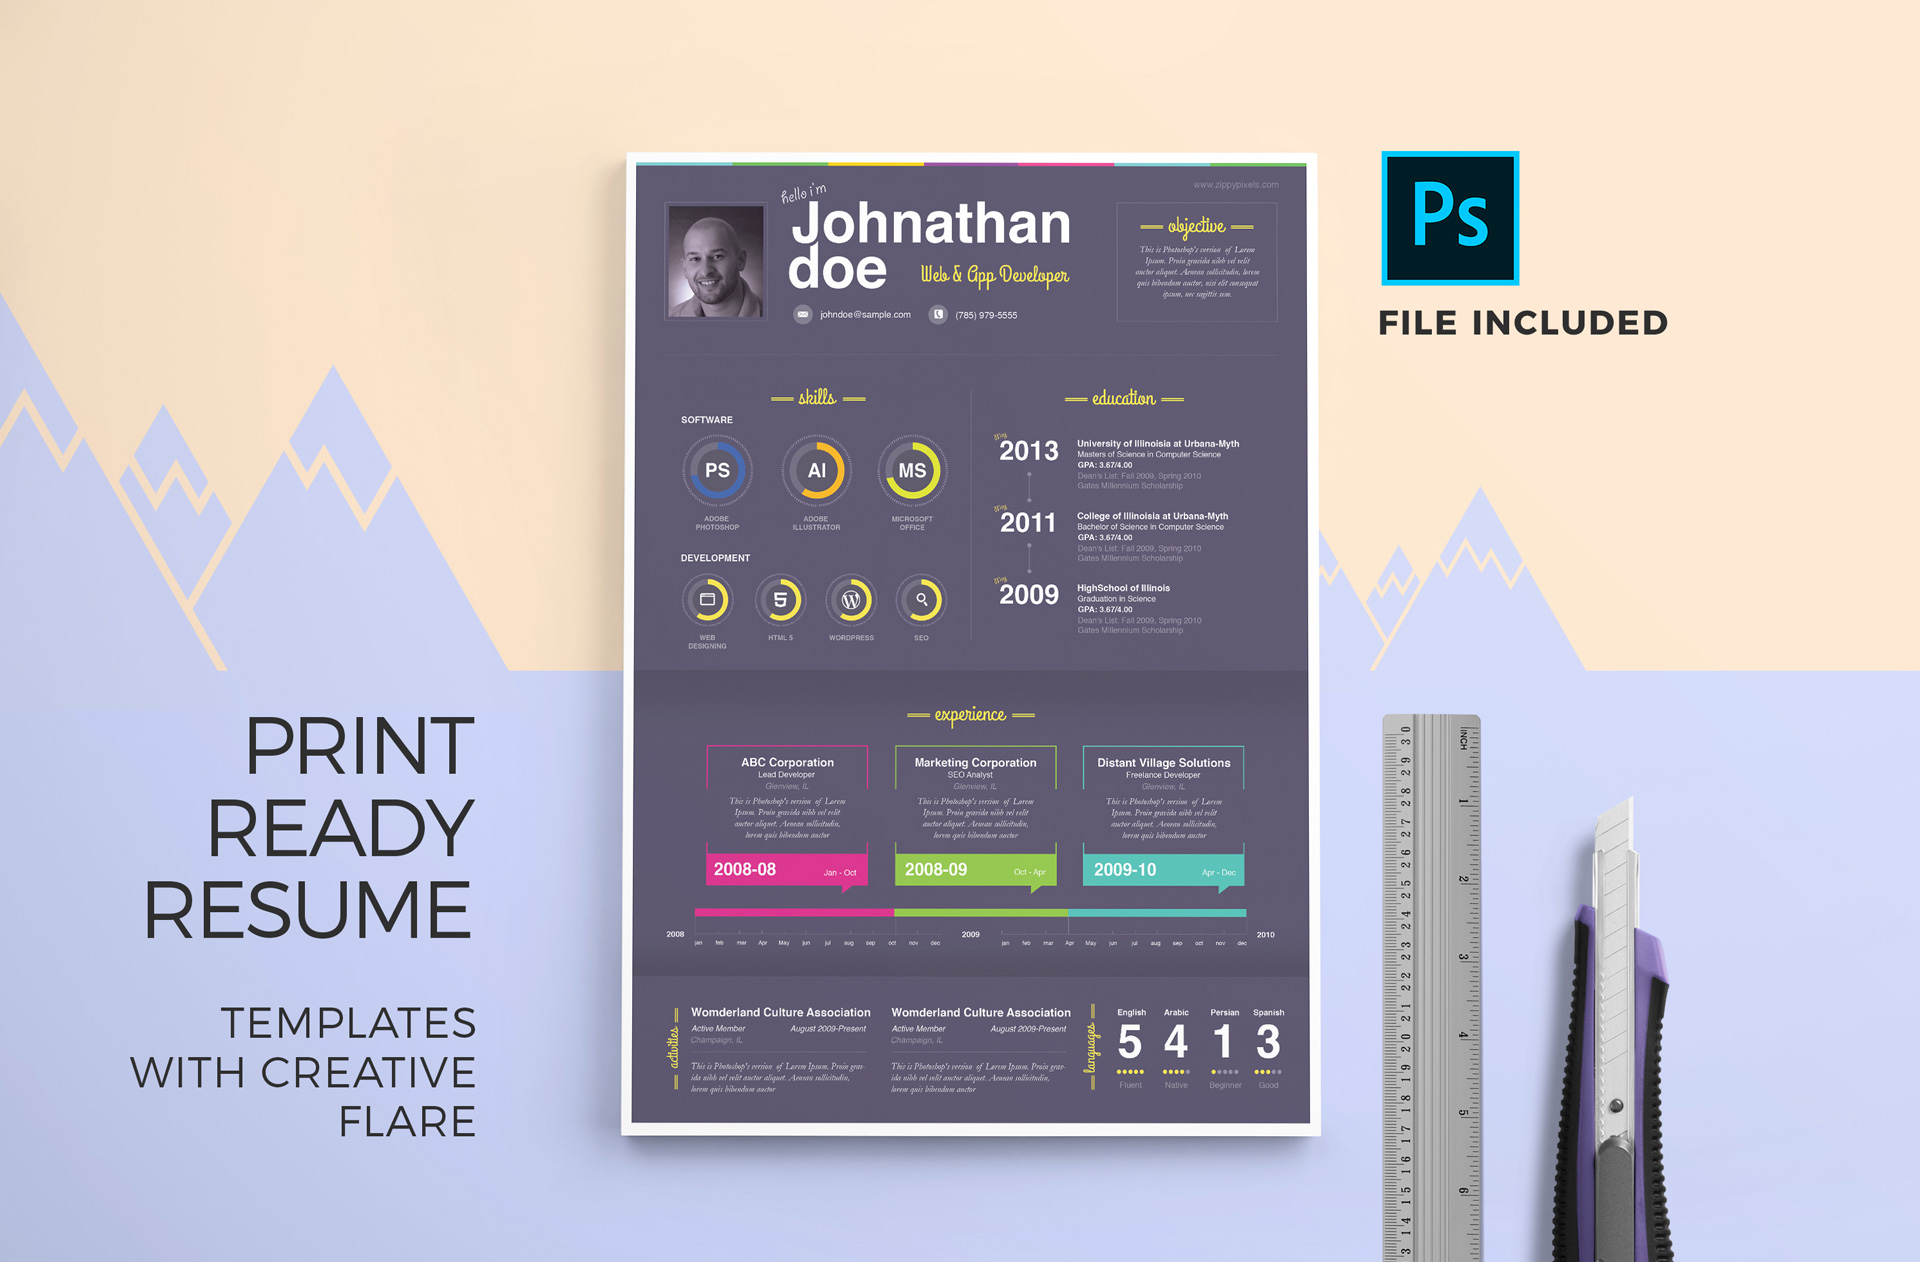 Print Ready Resume Templates With Creative Flare 3 Color Variations 2 Formats PSD DOCX